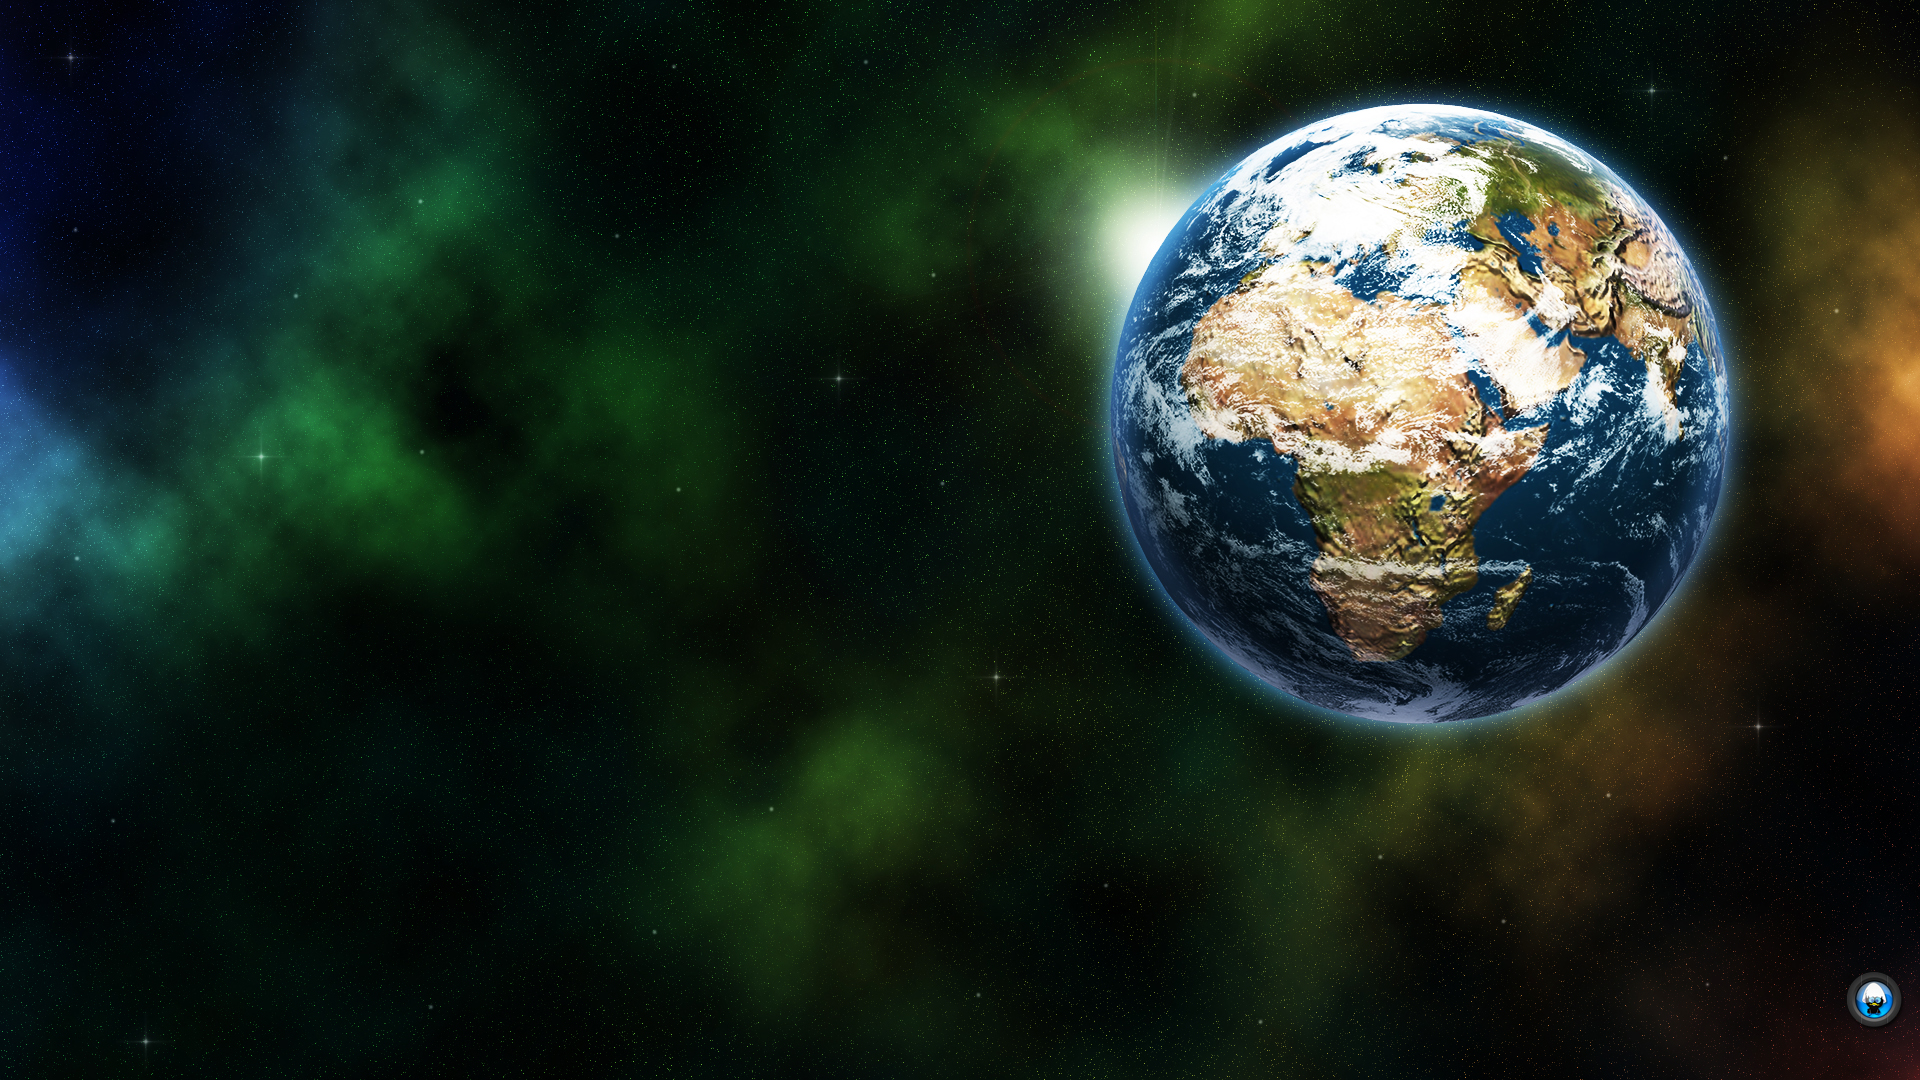 1920x1080 Wallpaper: Earth From Space Wallpaper 1920x1080